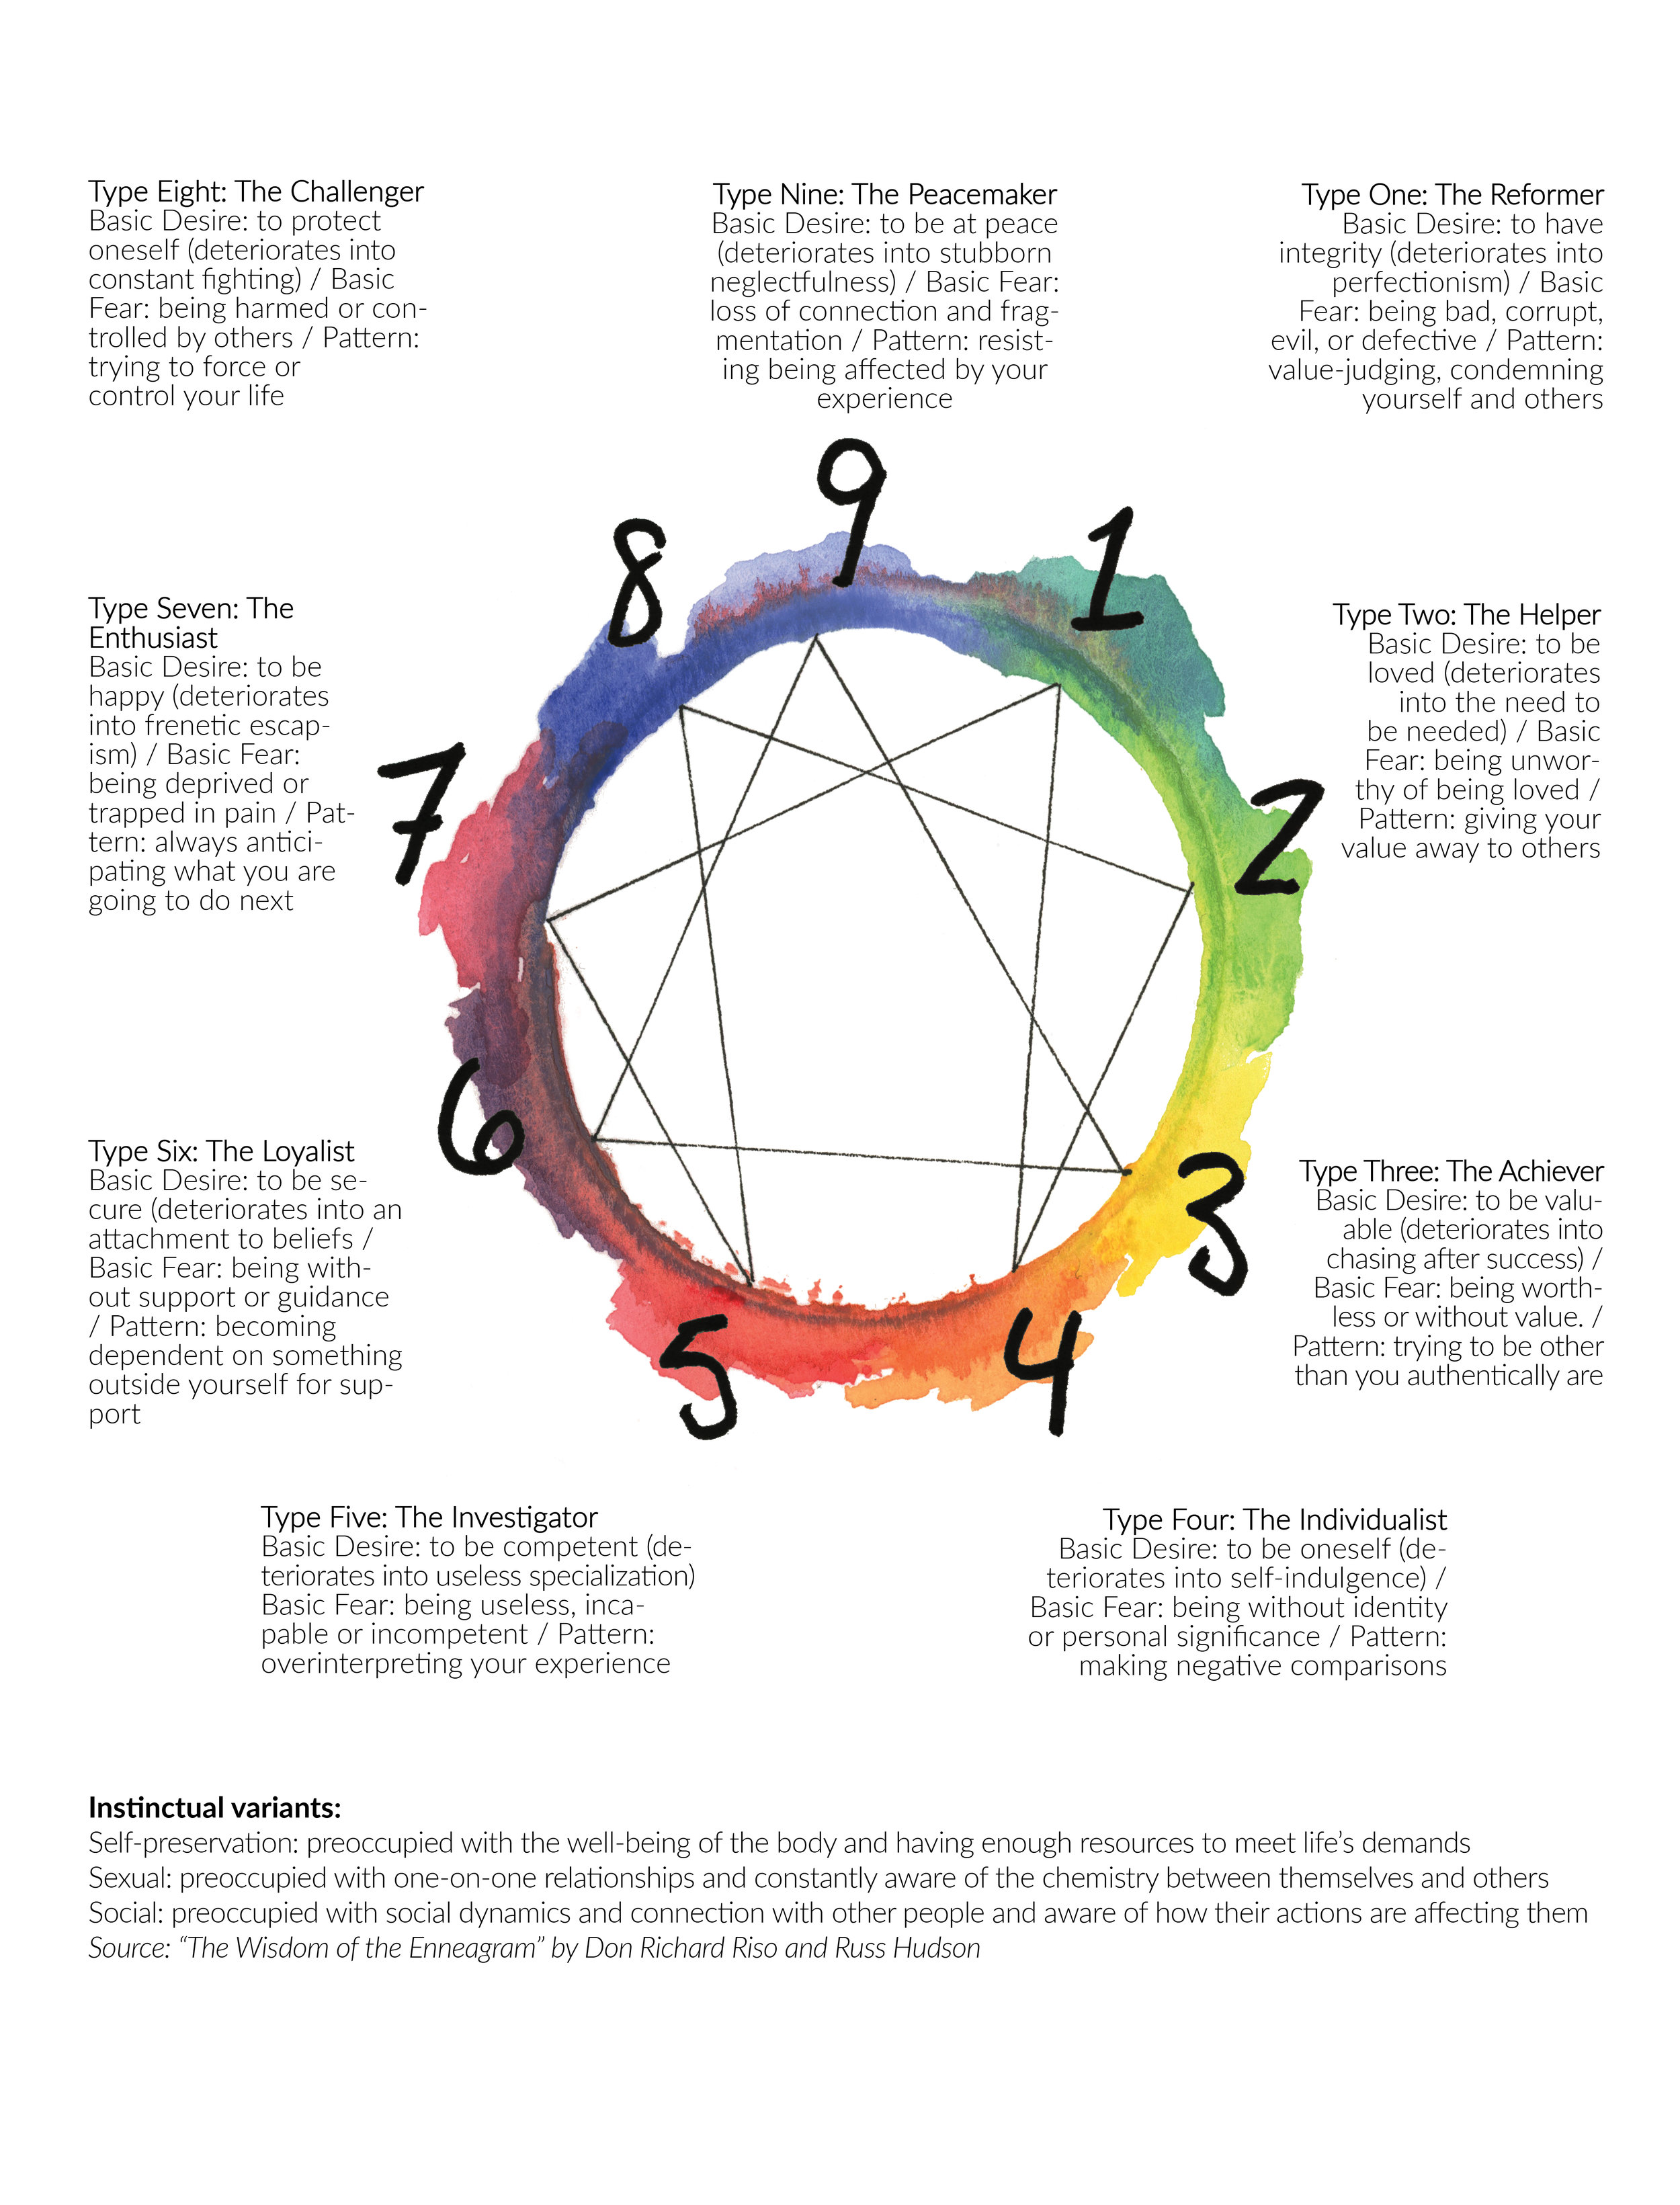 """According to  Riso and Hudson , each person has one primary type that does not change throughout life. The types are organized not by behavioral traits or characteristics, but by what primarily motivates each one. You won't experience all aspects of your type all the time, and you will probably identify with all nine motivations to some degree. Although """"typing"""" estranged family members and figures of popular culture is a common, strangely addicting pastime, the best person to determine one's type is oneself. The types are grouped by """"triadic centers"""": thinking, feeling, and intuition. If you are in the thinking center, for example, you experience an imbalance that distorts the way the thinking part of your brain interacts with your feelings and intuition.  If that's not enough variation, most schools of Enneagram thought also propose that you have at least one dominant """"wing"""": one of the types adjacent to your own that also affects the way you exhibit their personality. You also have one dominant and one secondary """"instinctual variant"""" (self-preservation, social, or sexual). Any type can have any instinctual variant. Furthermore, each type can """"move"""" under stress or growth to embody characteristics of a different type, following the lines on the Enneagram polygon. Each type also has nine levels of development, which are grouped into healthy, average, and unhealthy stages."""